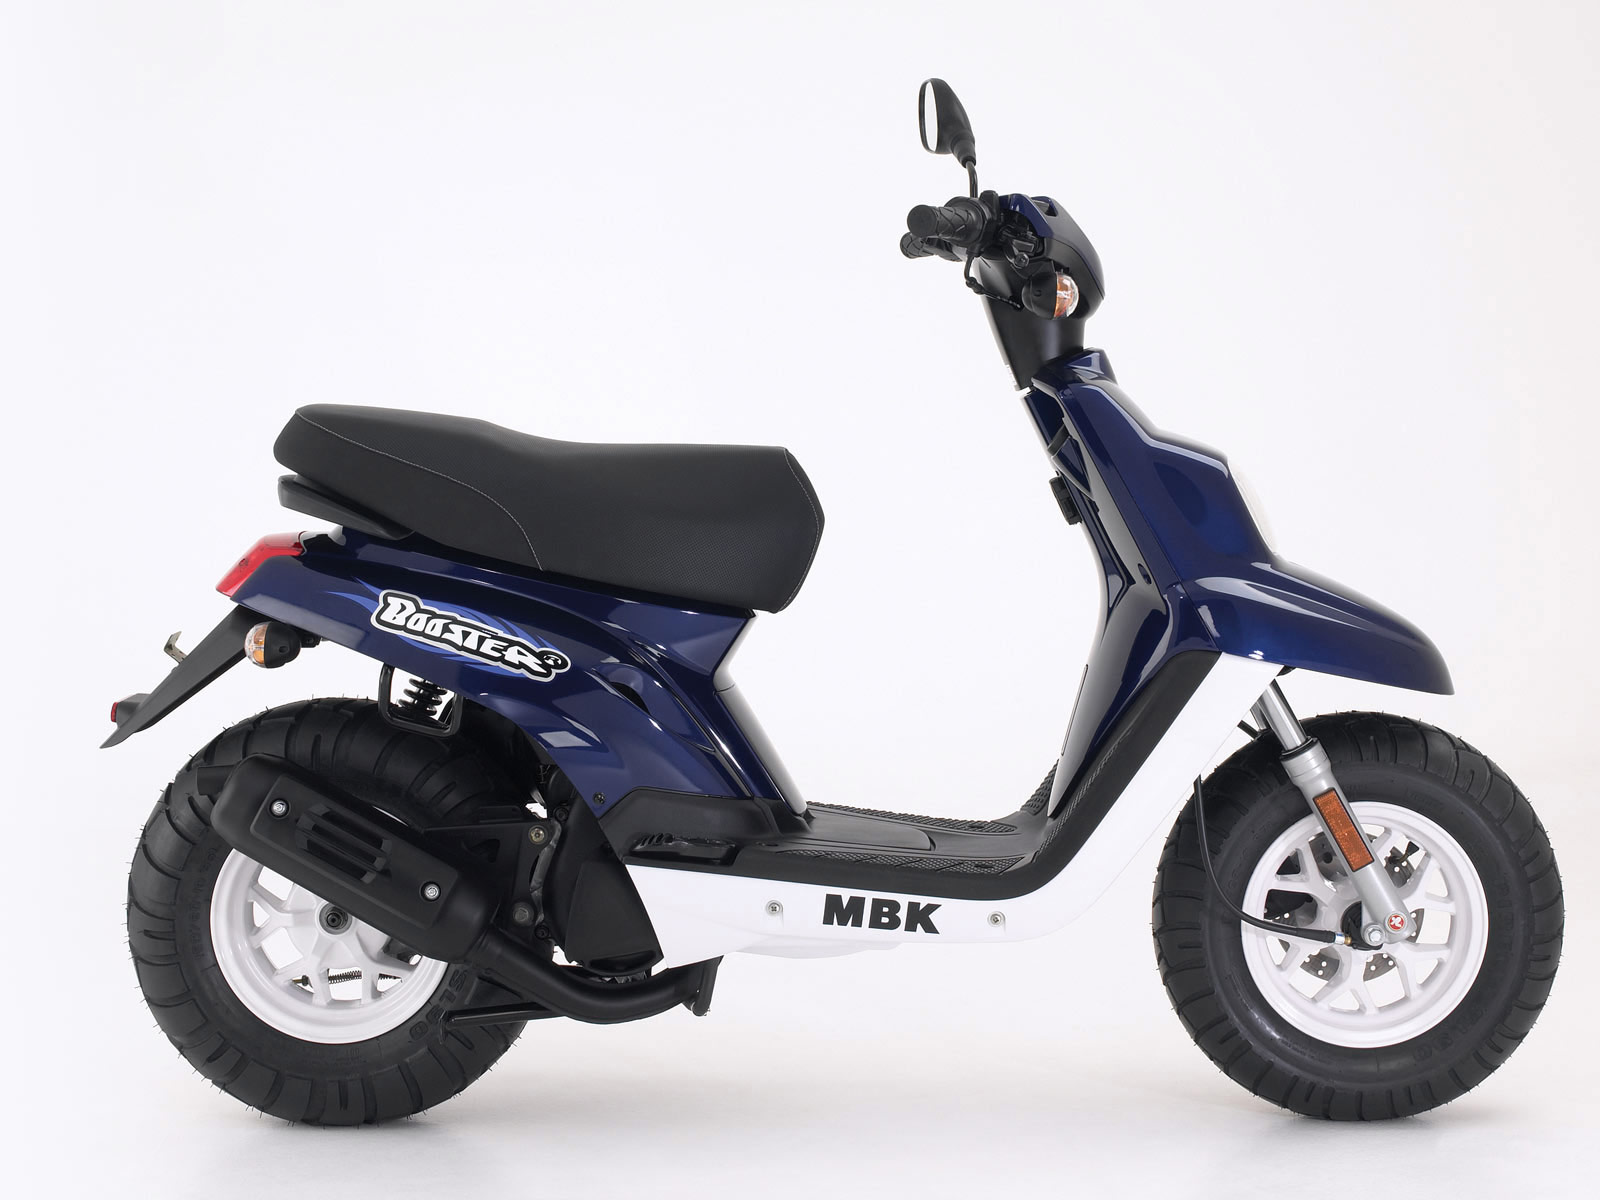 2005 Mbk Booster Scooter Pictures Specifications